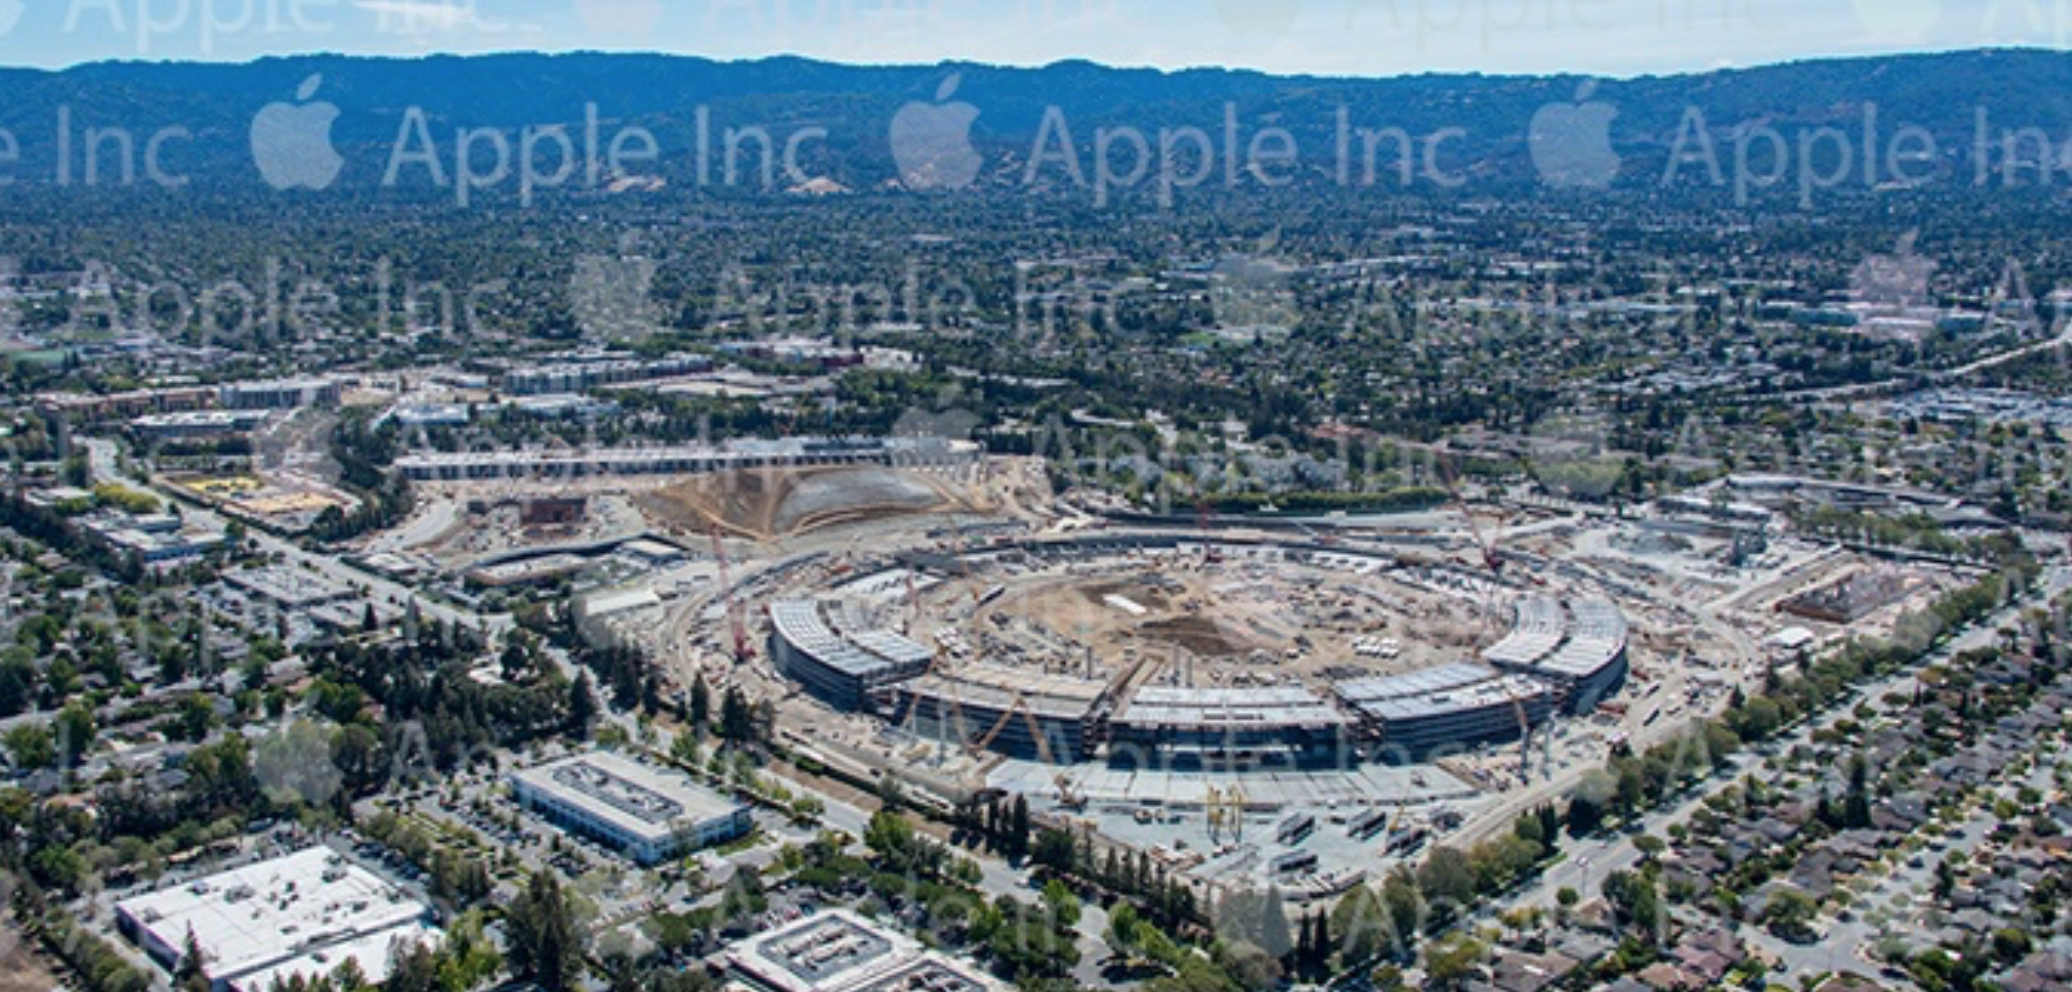 Apple Campus 2 Aug 2015